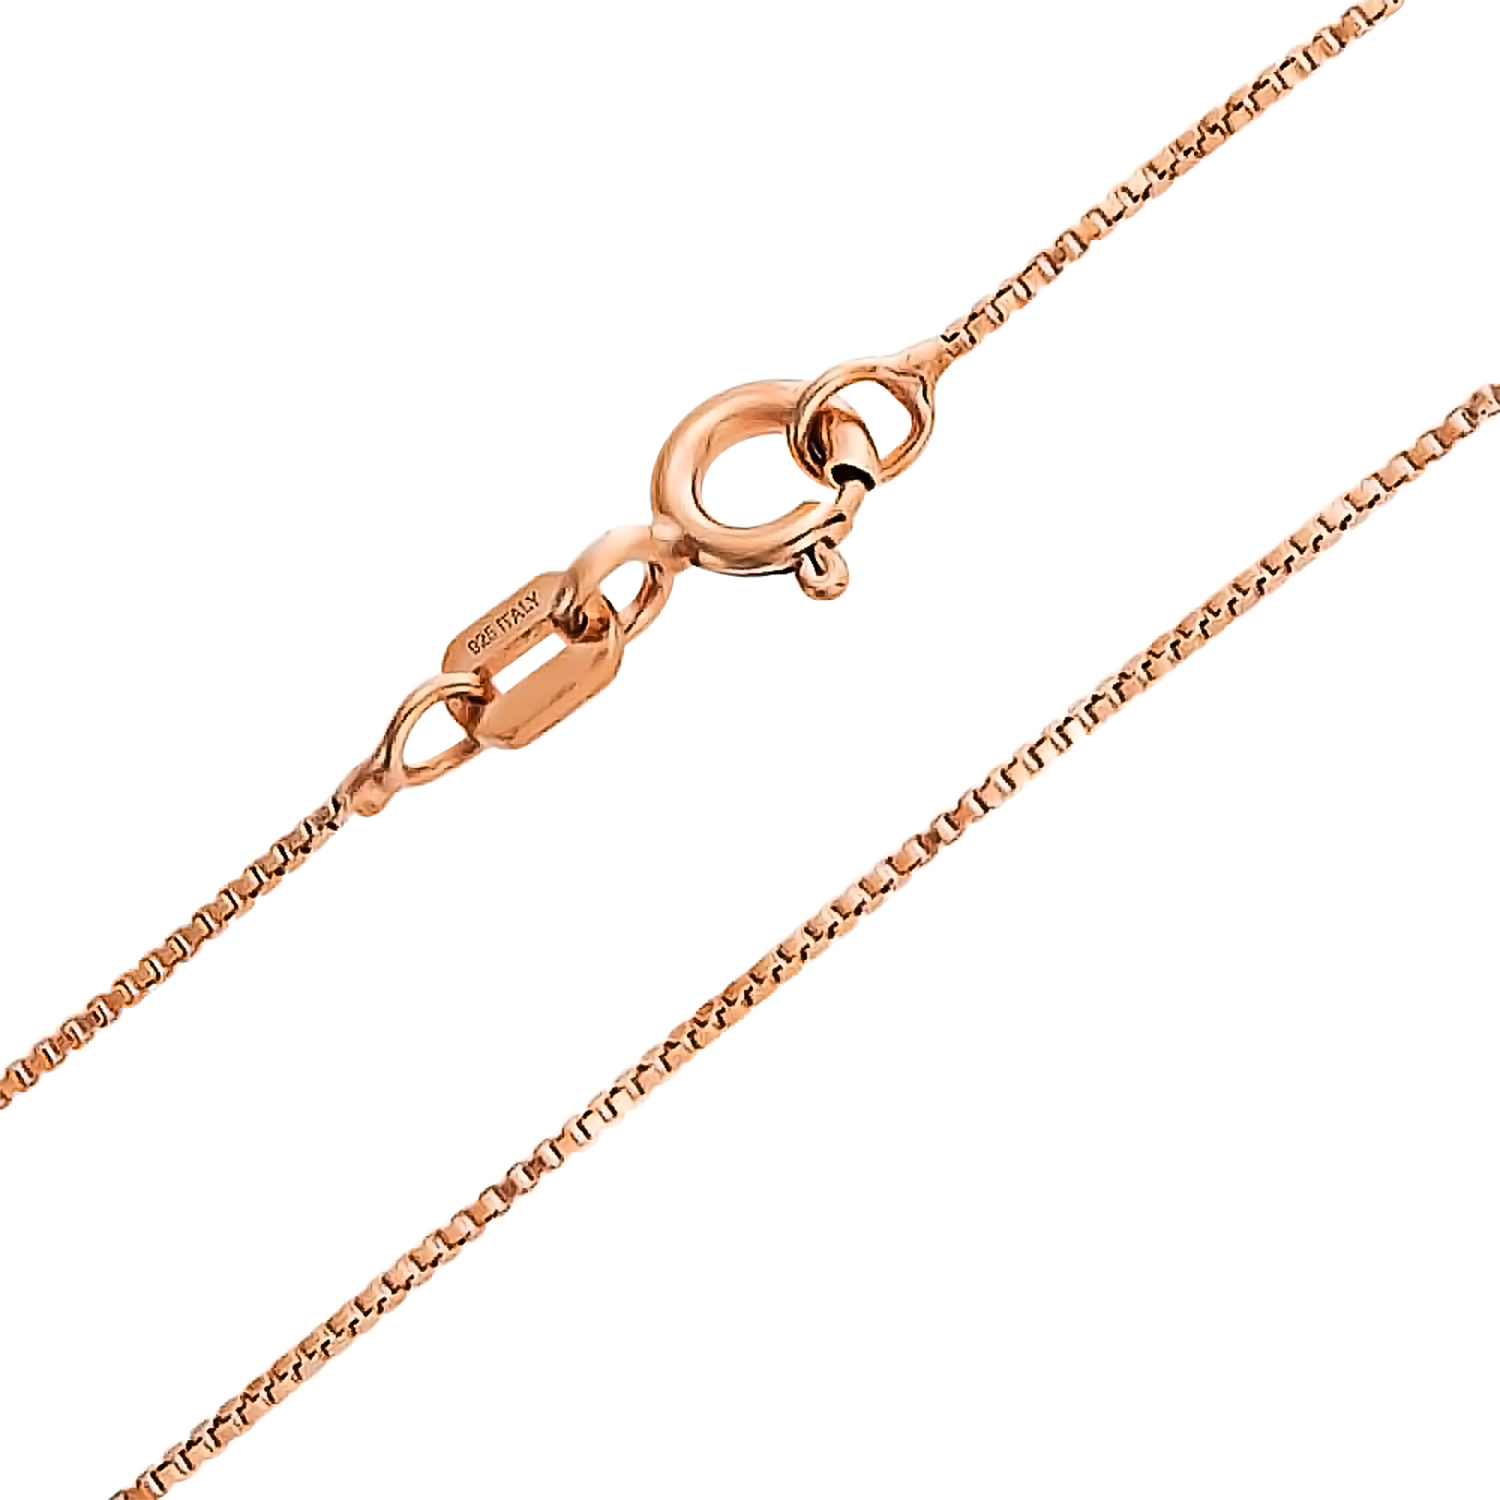 Rose Gold Box Chain Italy Necklace 18 inches 1mm